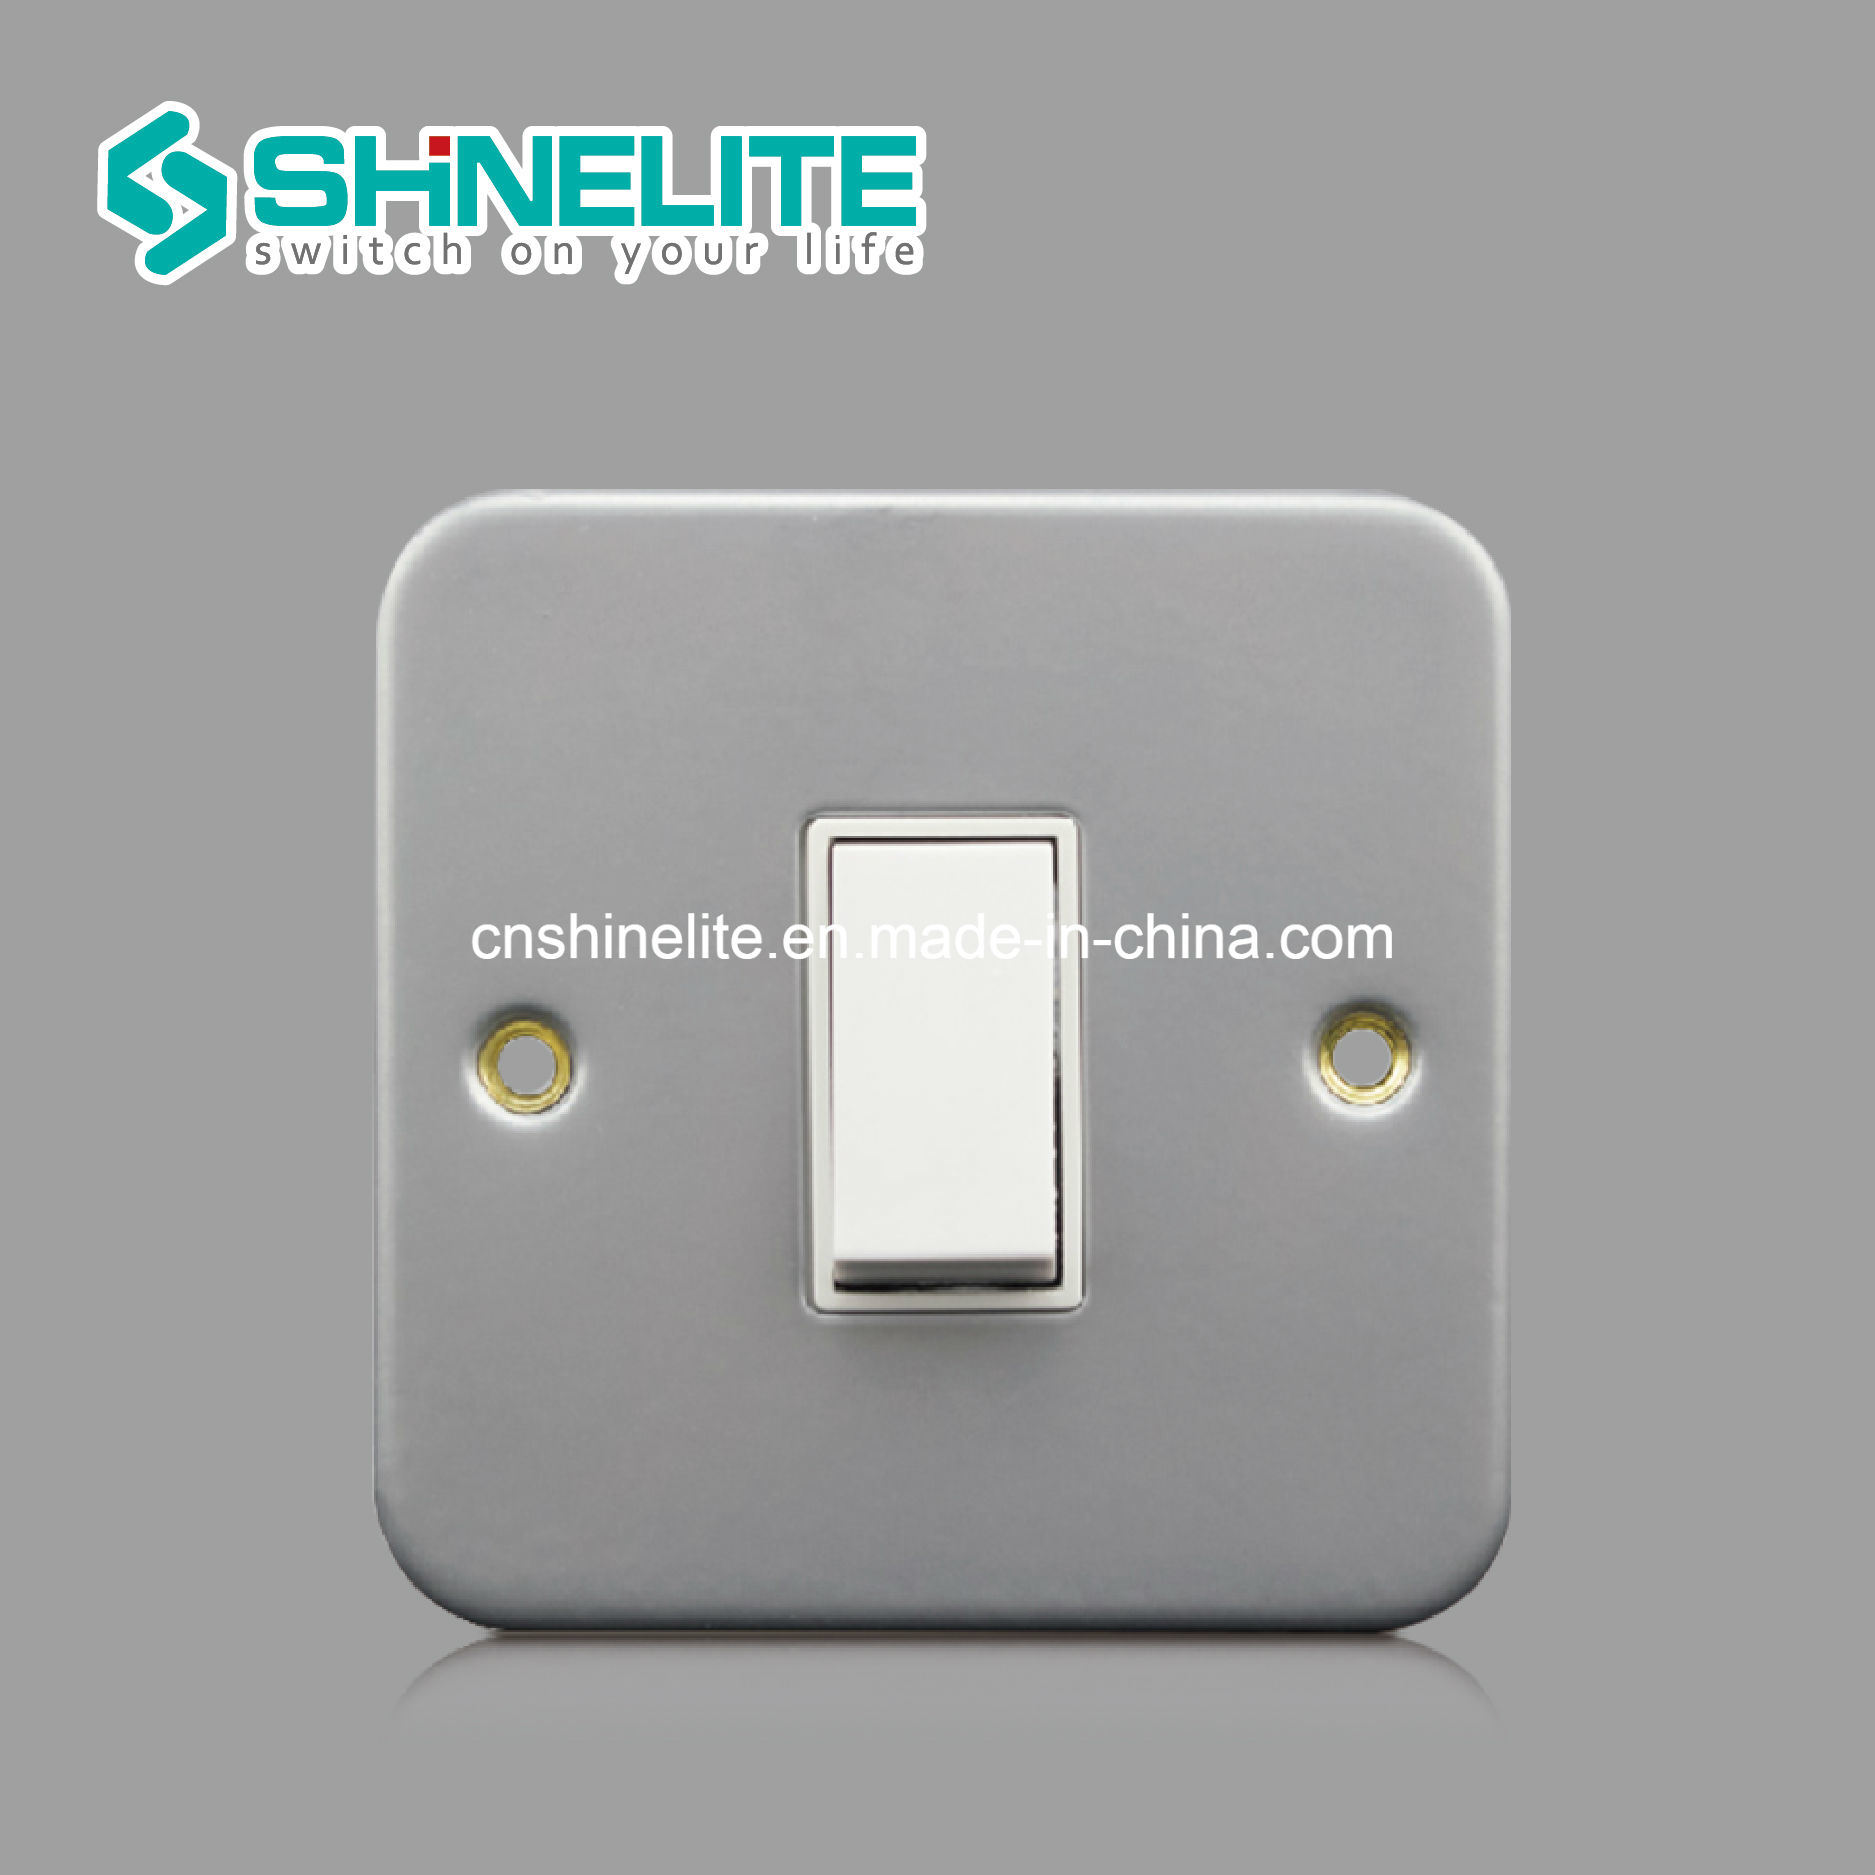 China Metal Clad Electric Switch 10A Switch of High Quality - China ...